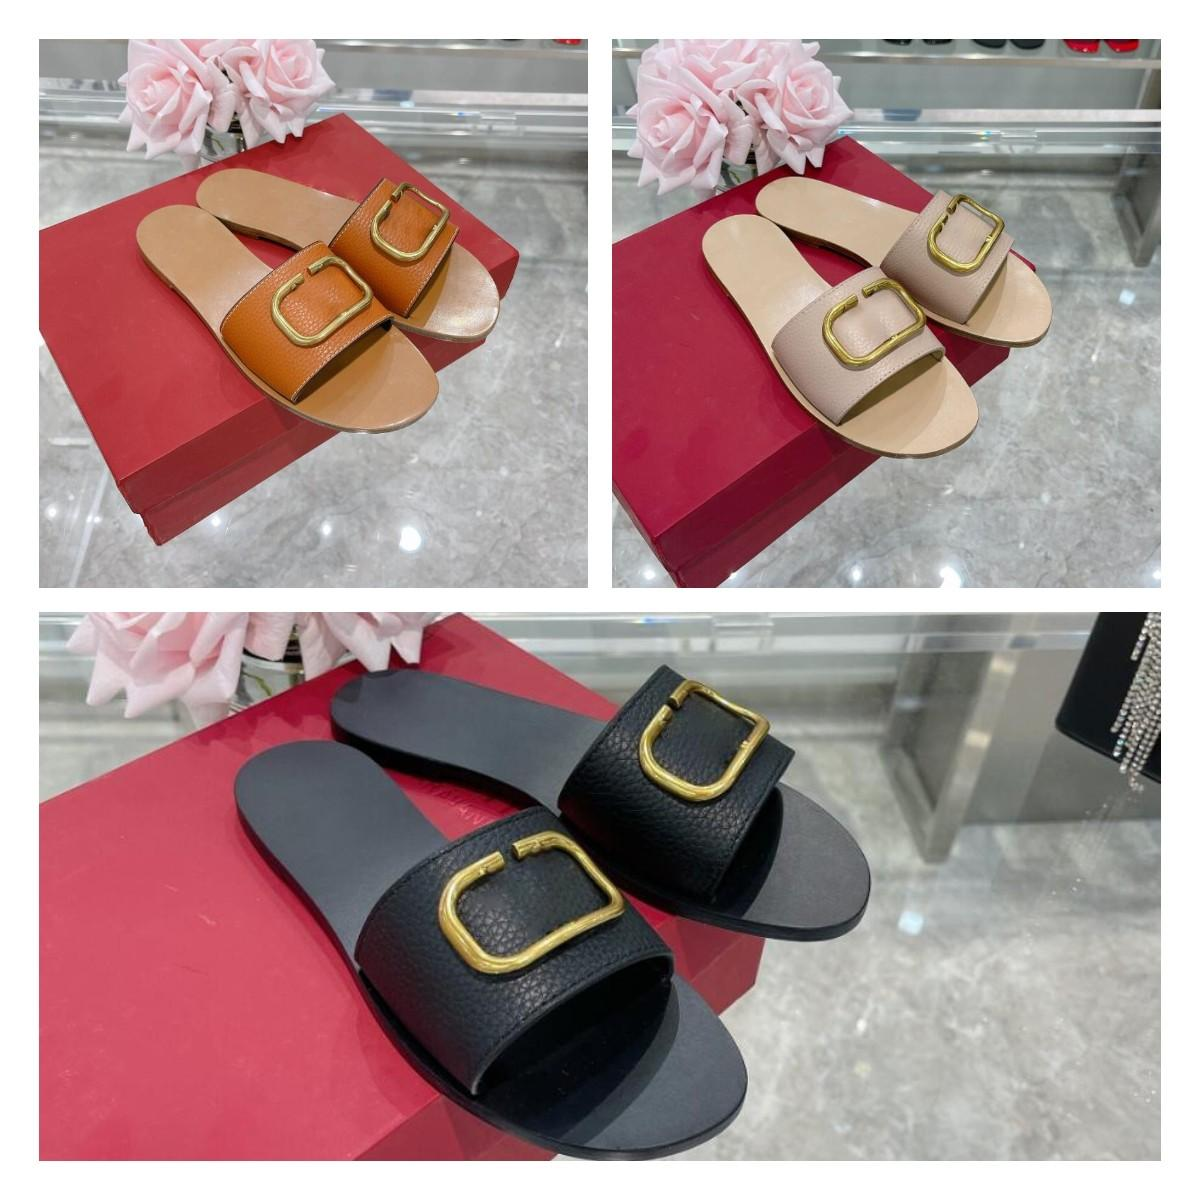 2021 Luxury Designer Women Slipper Metallic VLogo Signature trim grained cowhide 0.5 cm leather slippers sandals vintage classic Top quality with box size 35-40